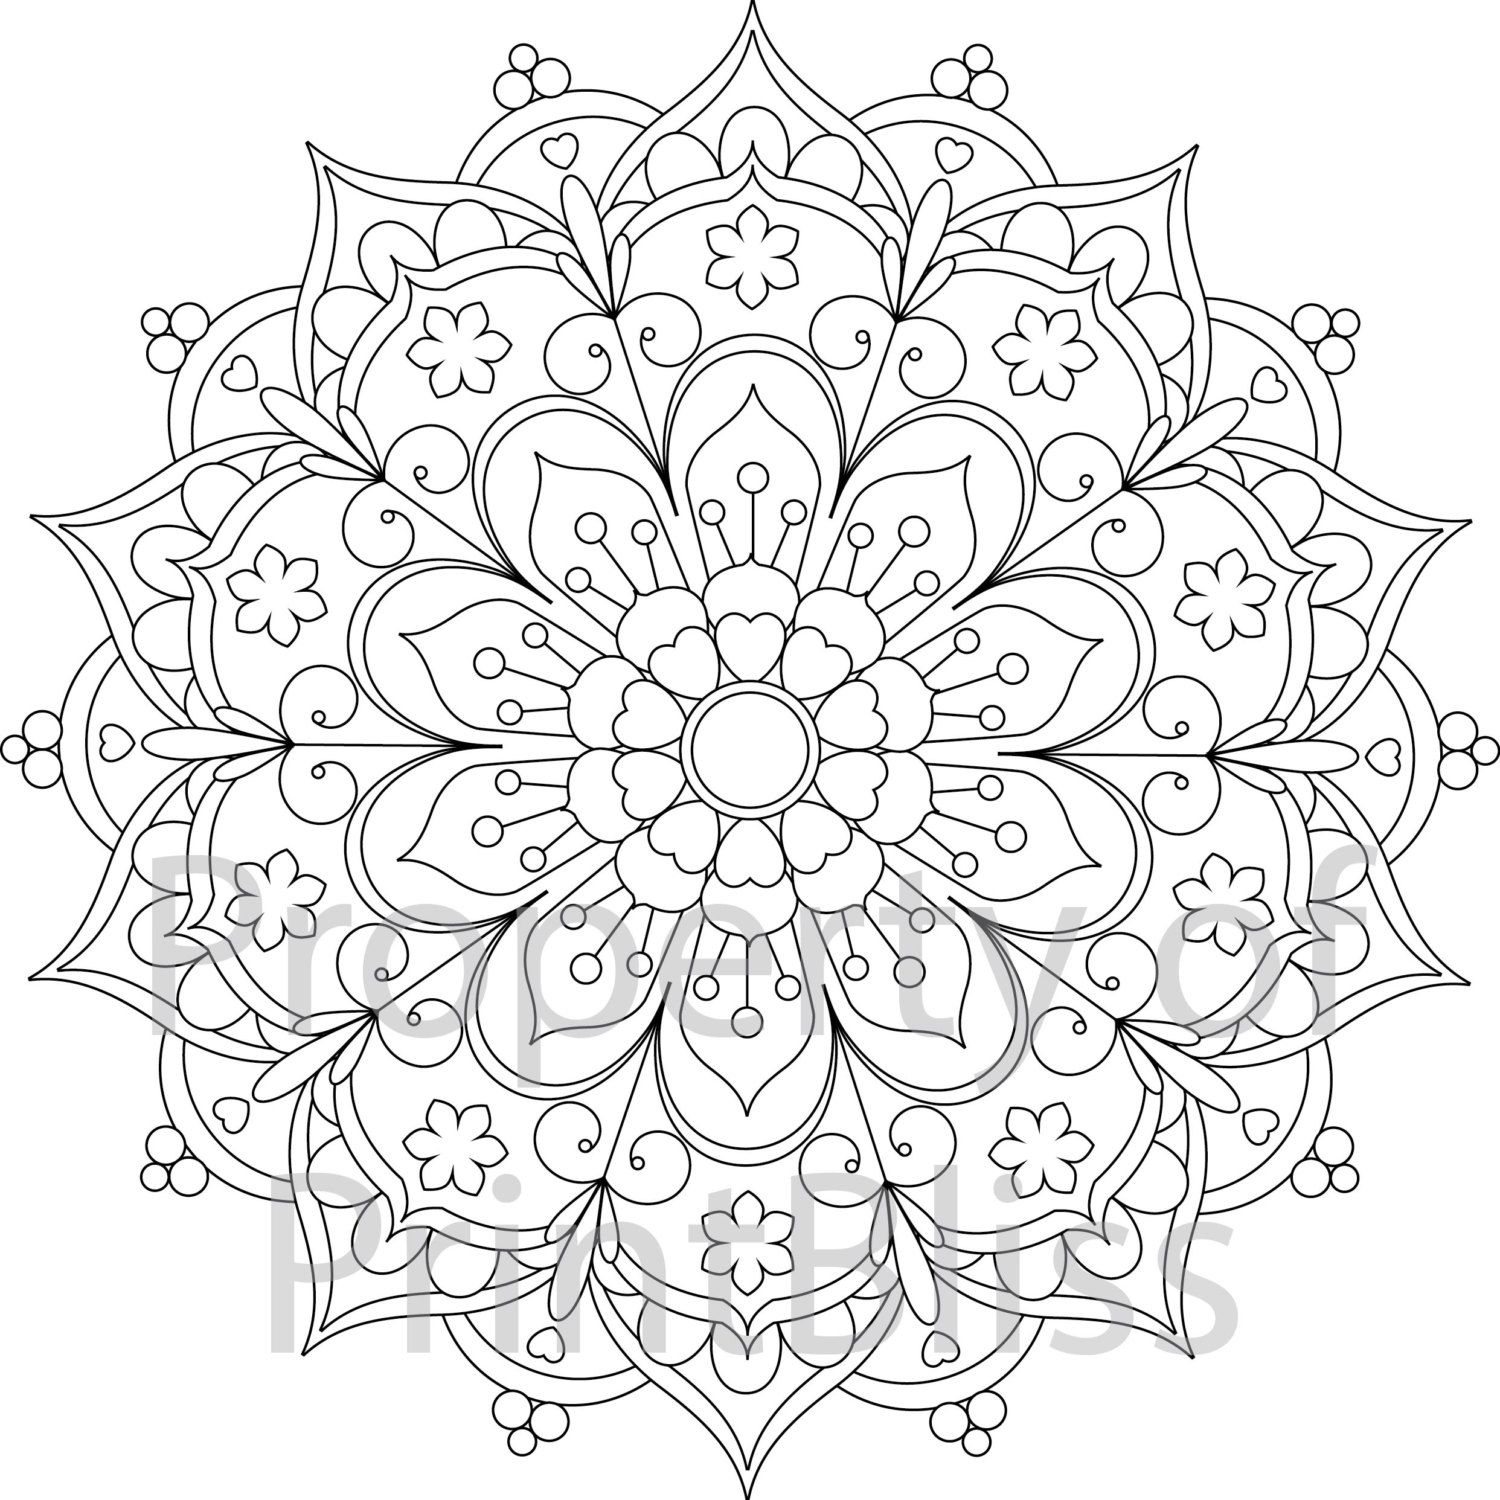 25 Flower Mandala Printable Coloring Page Mandala Coloring Books Abstract Coloring Pages Mandala Coloring Pages